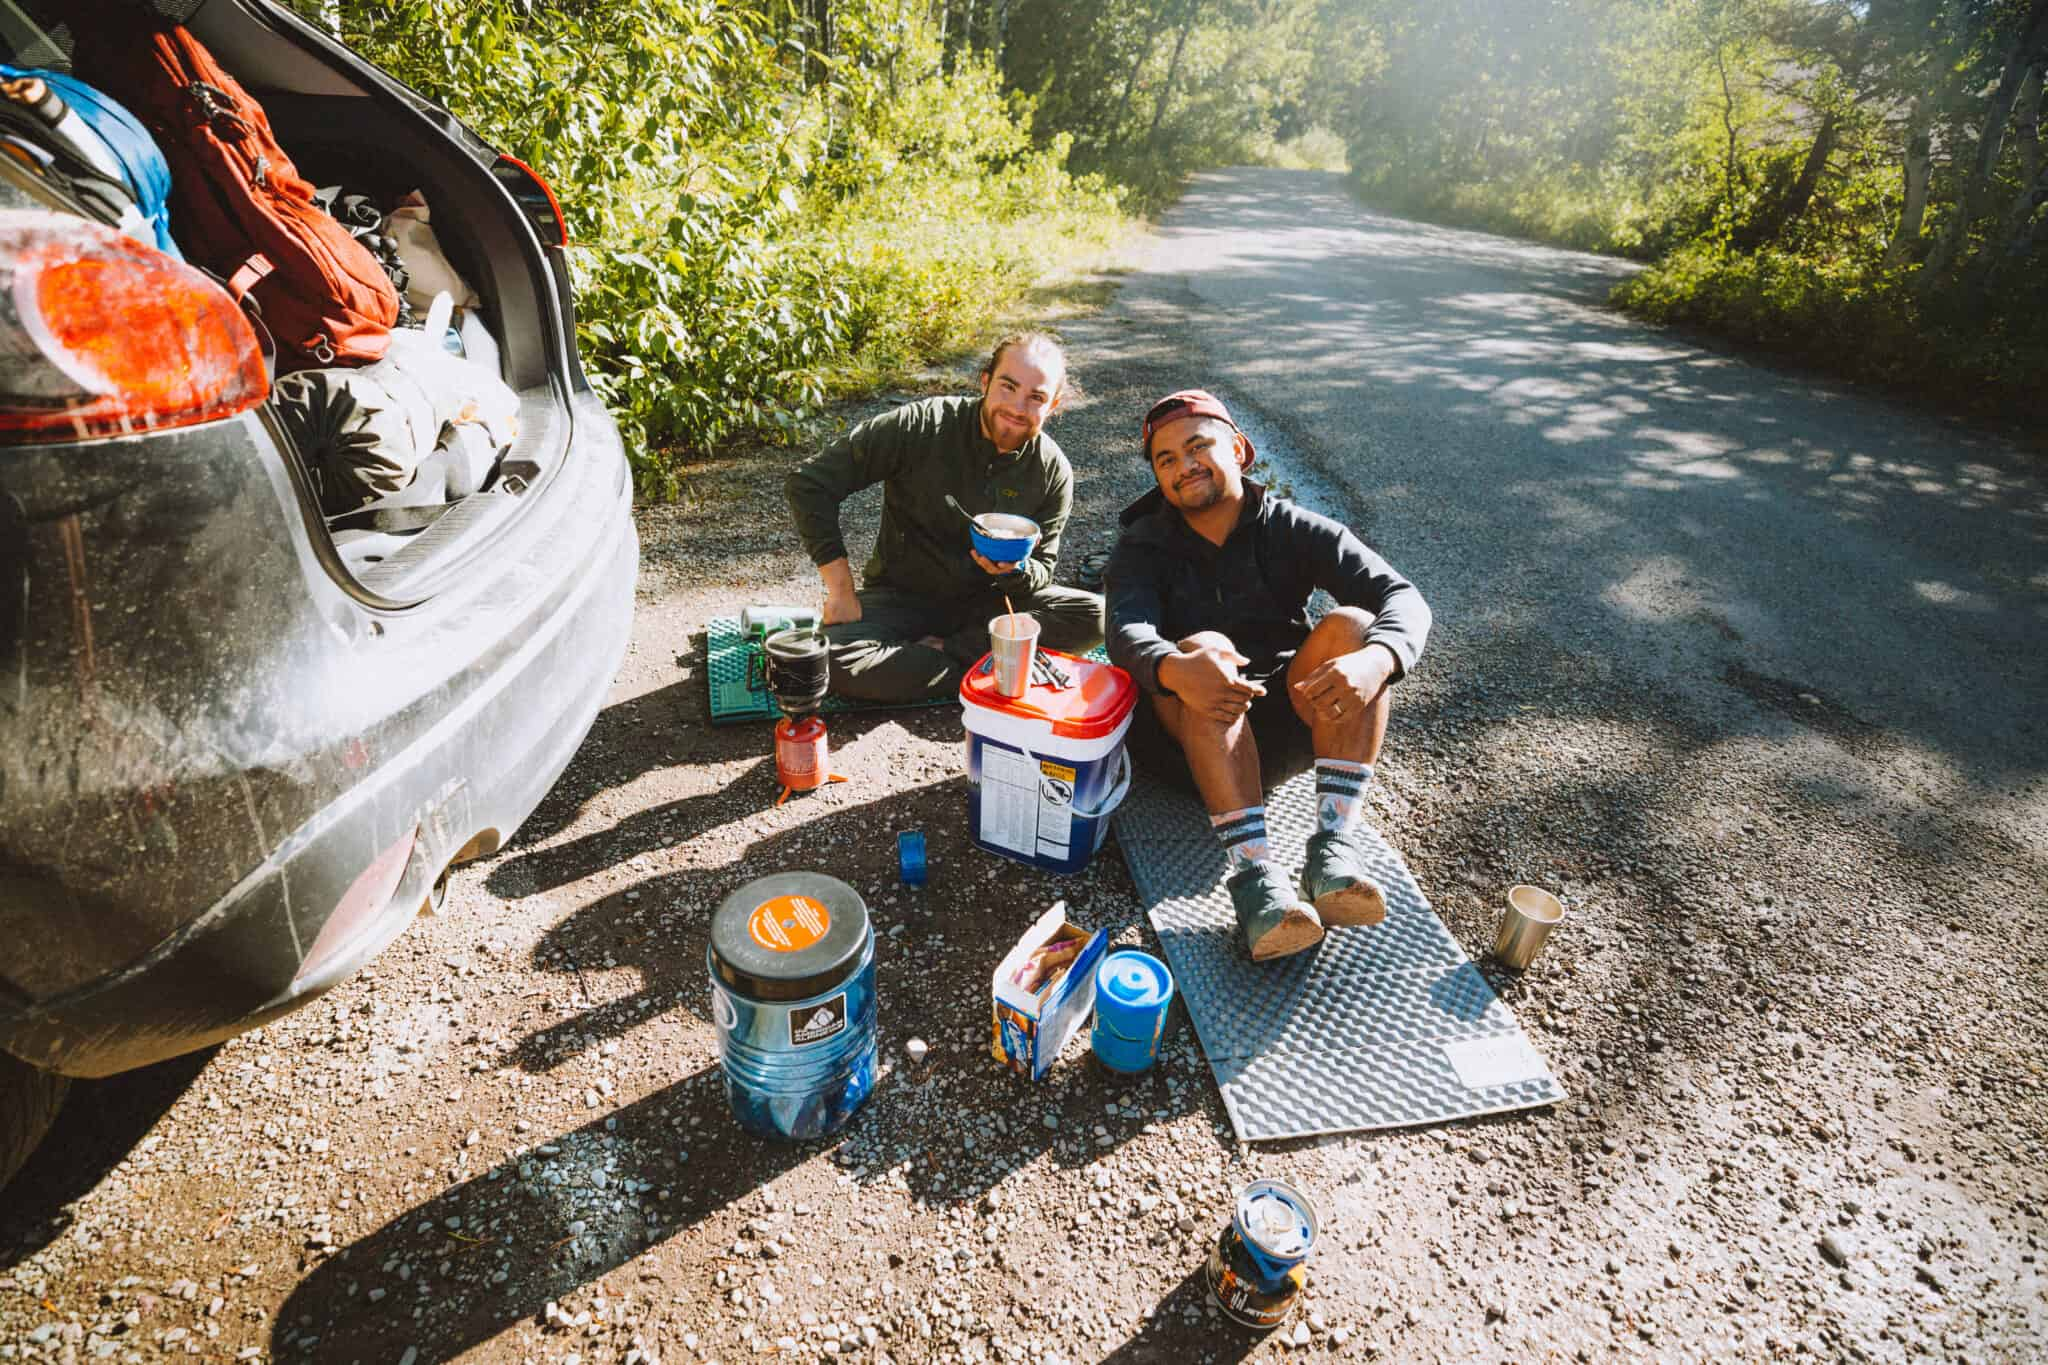 10+ Insanely Easy Camping Meals To Make (Cooking Tools and Simple Recipes)